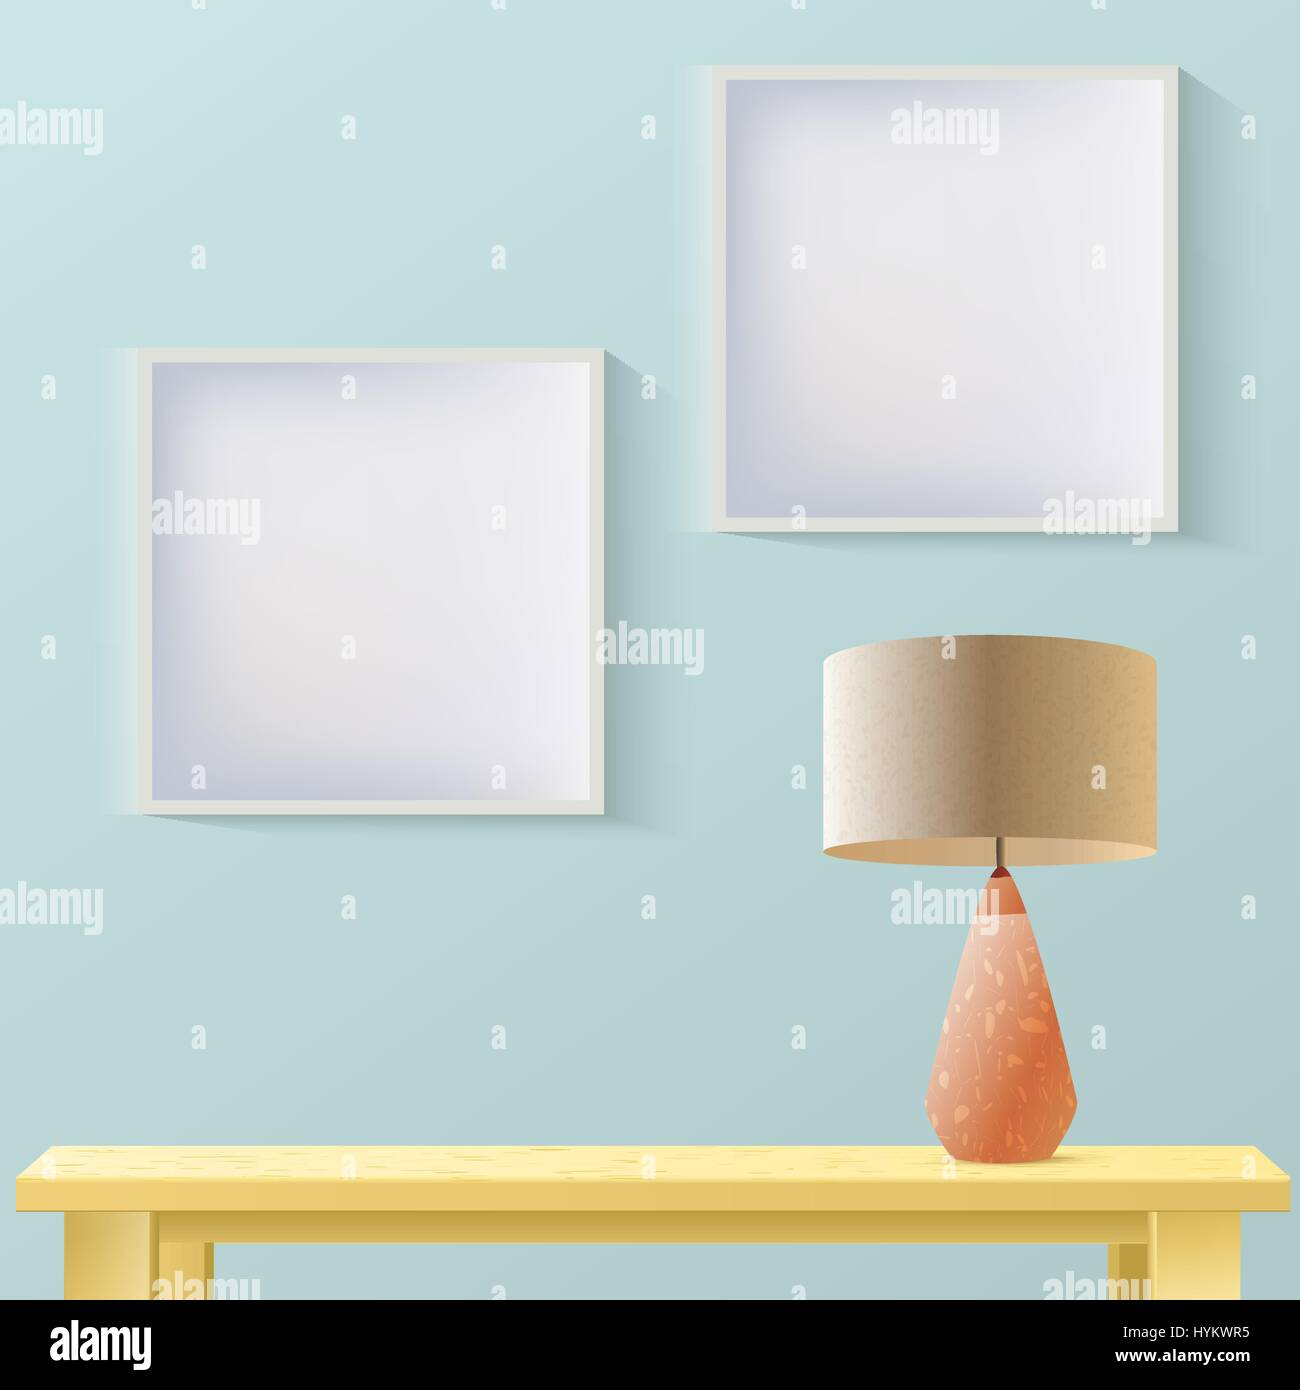 Interior room realistic mockup with frame or picture on wall,wooden table and lamp. Layered, editable. Fashion trendy - Stock Vector